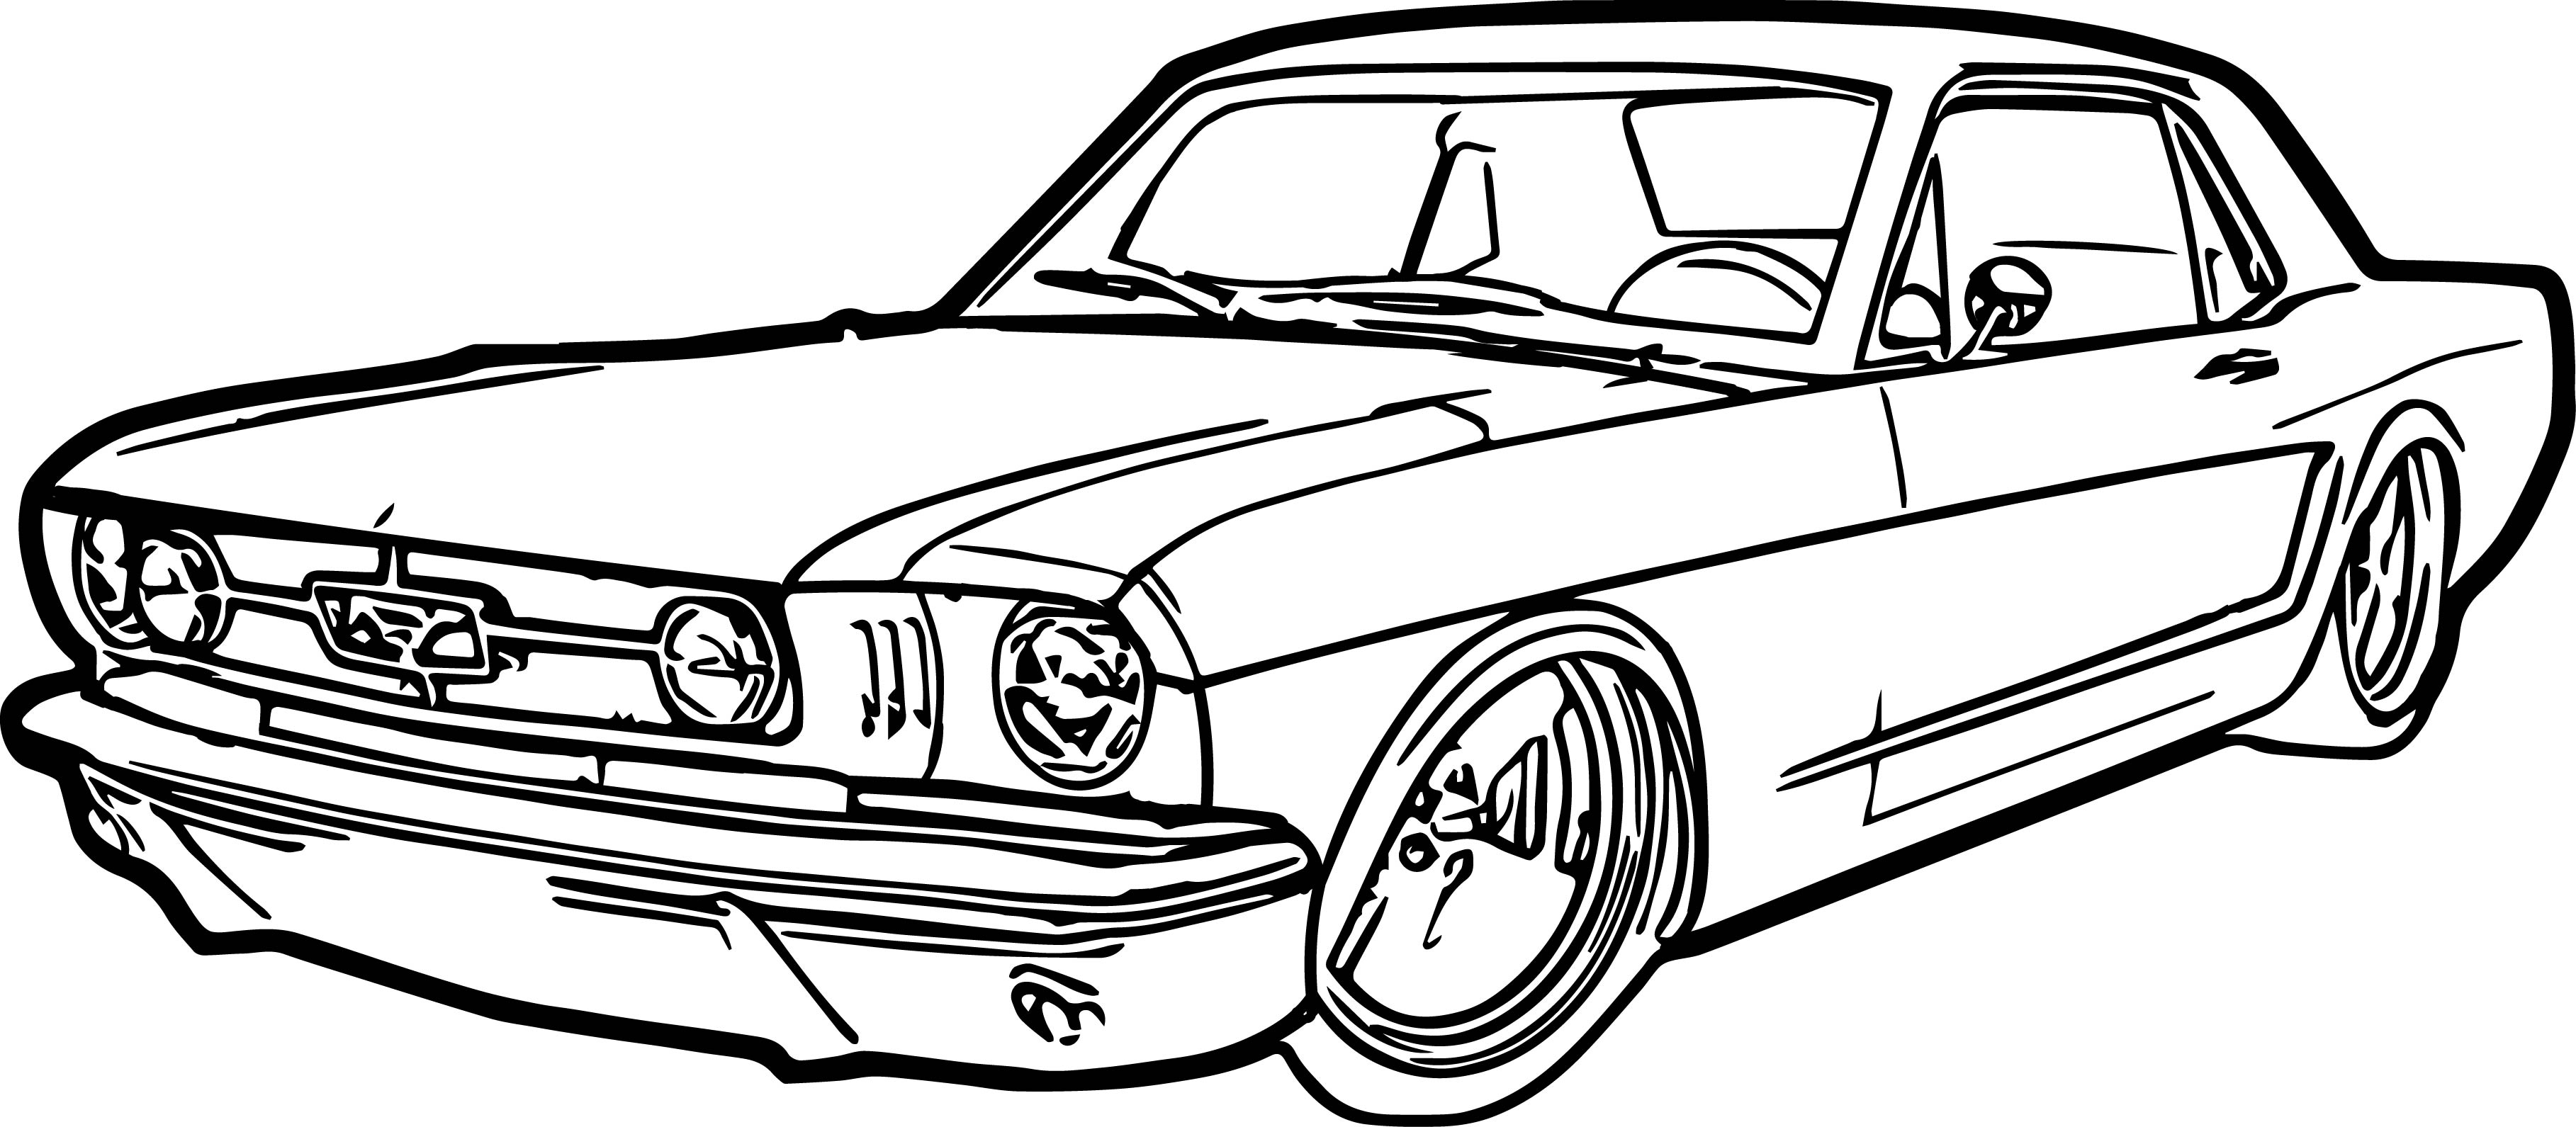 Coloring Pages Mustang Car : Ford mustang car coloring page wecoloringpage